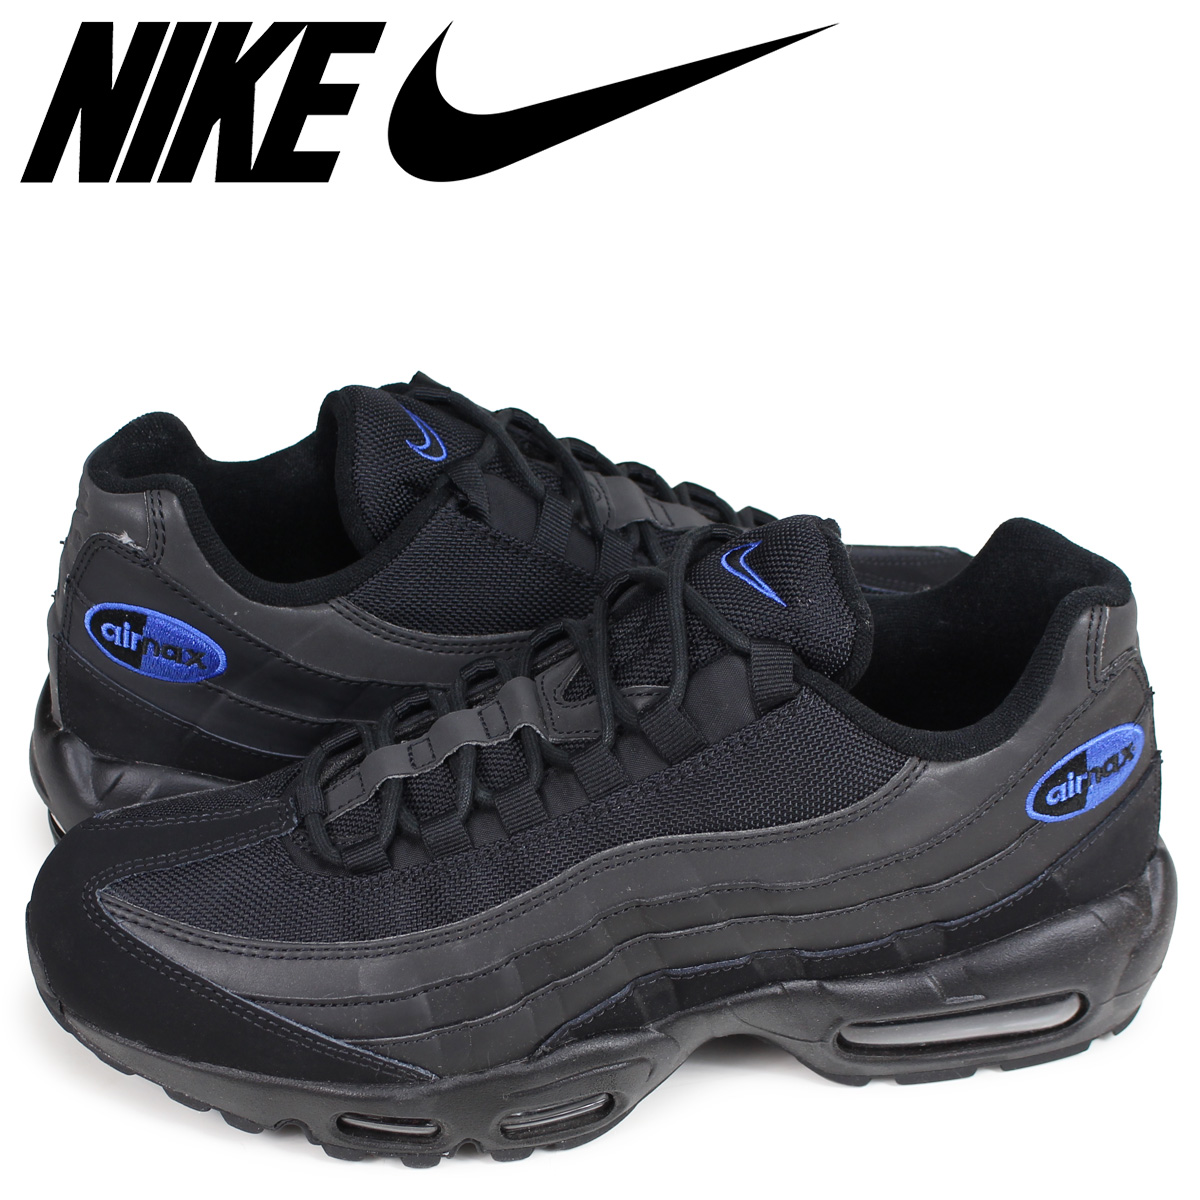 NIKE AIR MAX 95 PREMIUM SE Kie Ney AMAX 95 sneakers men black black BQ3168 002